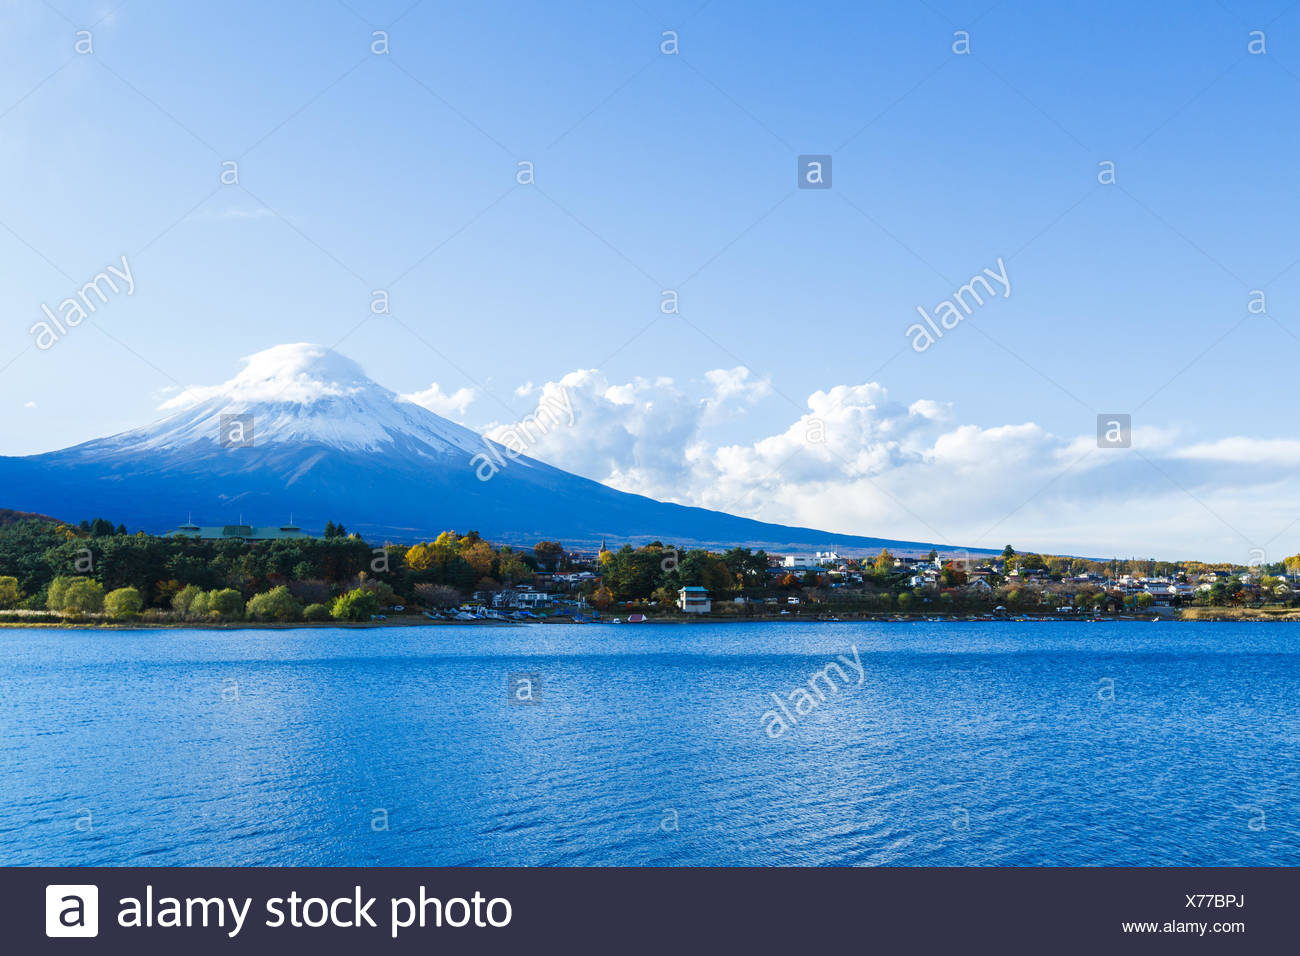 tree asia snow coke cocaine material drug anaesthetic addictive drug tip peak capped day during the day covered japanese japan - Stock Image